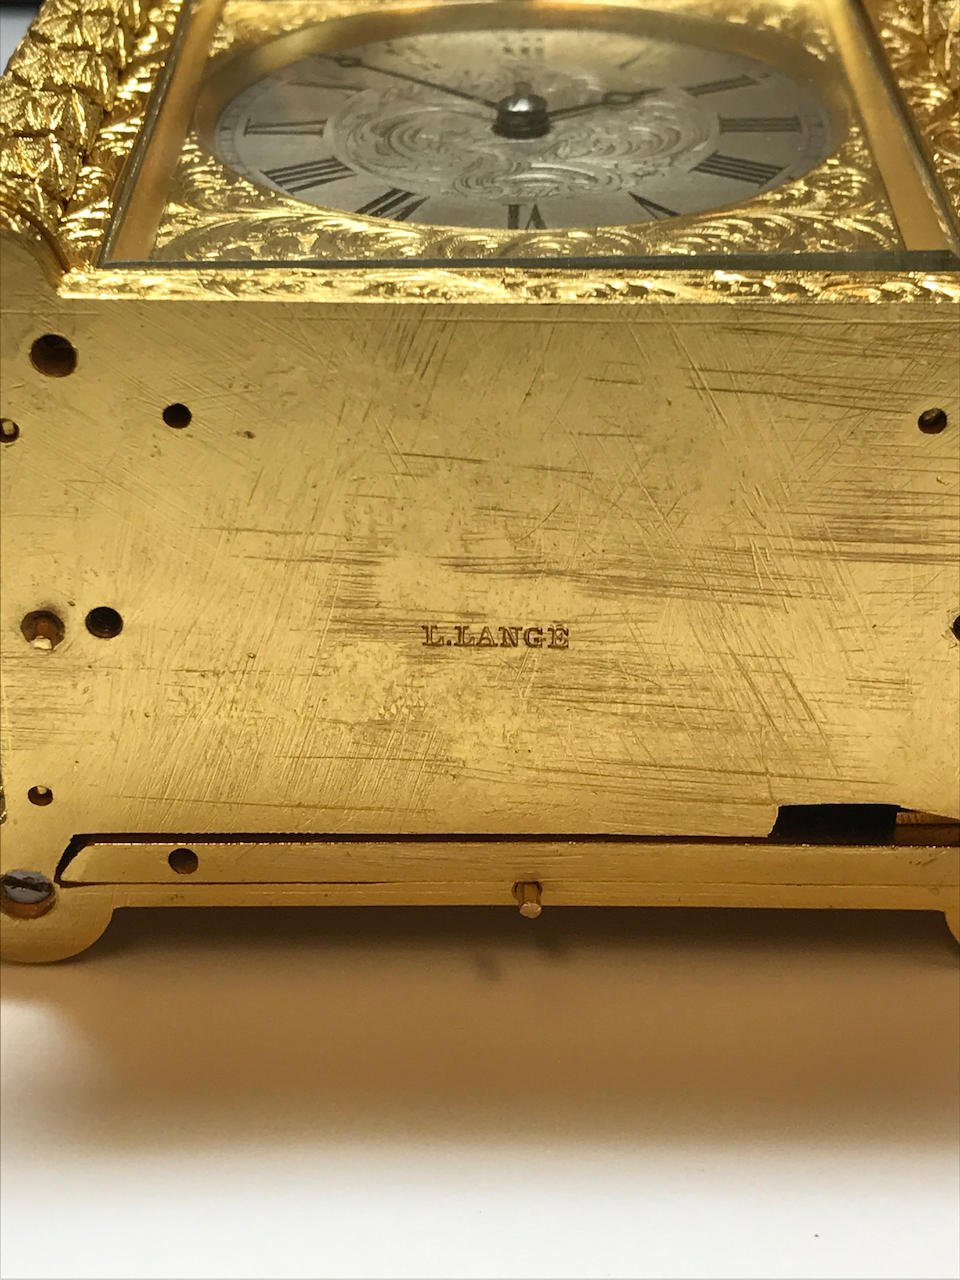 A fine small engraved gilt carriage timepiece Probably by Aubert & Klaftenberger, London, No. 4361, the case signed L. Lange, No. 1098 Mid 19th century